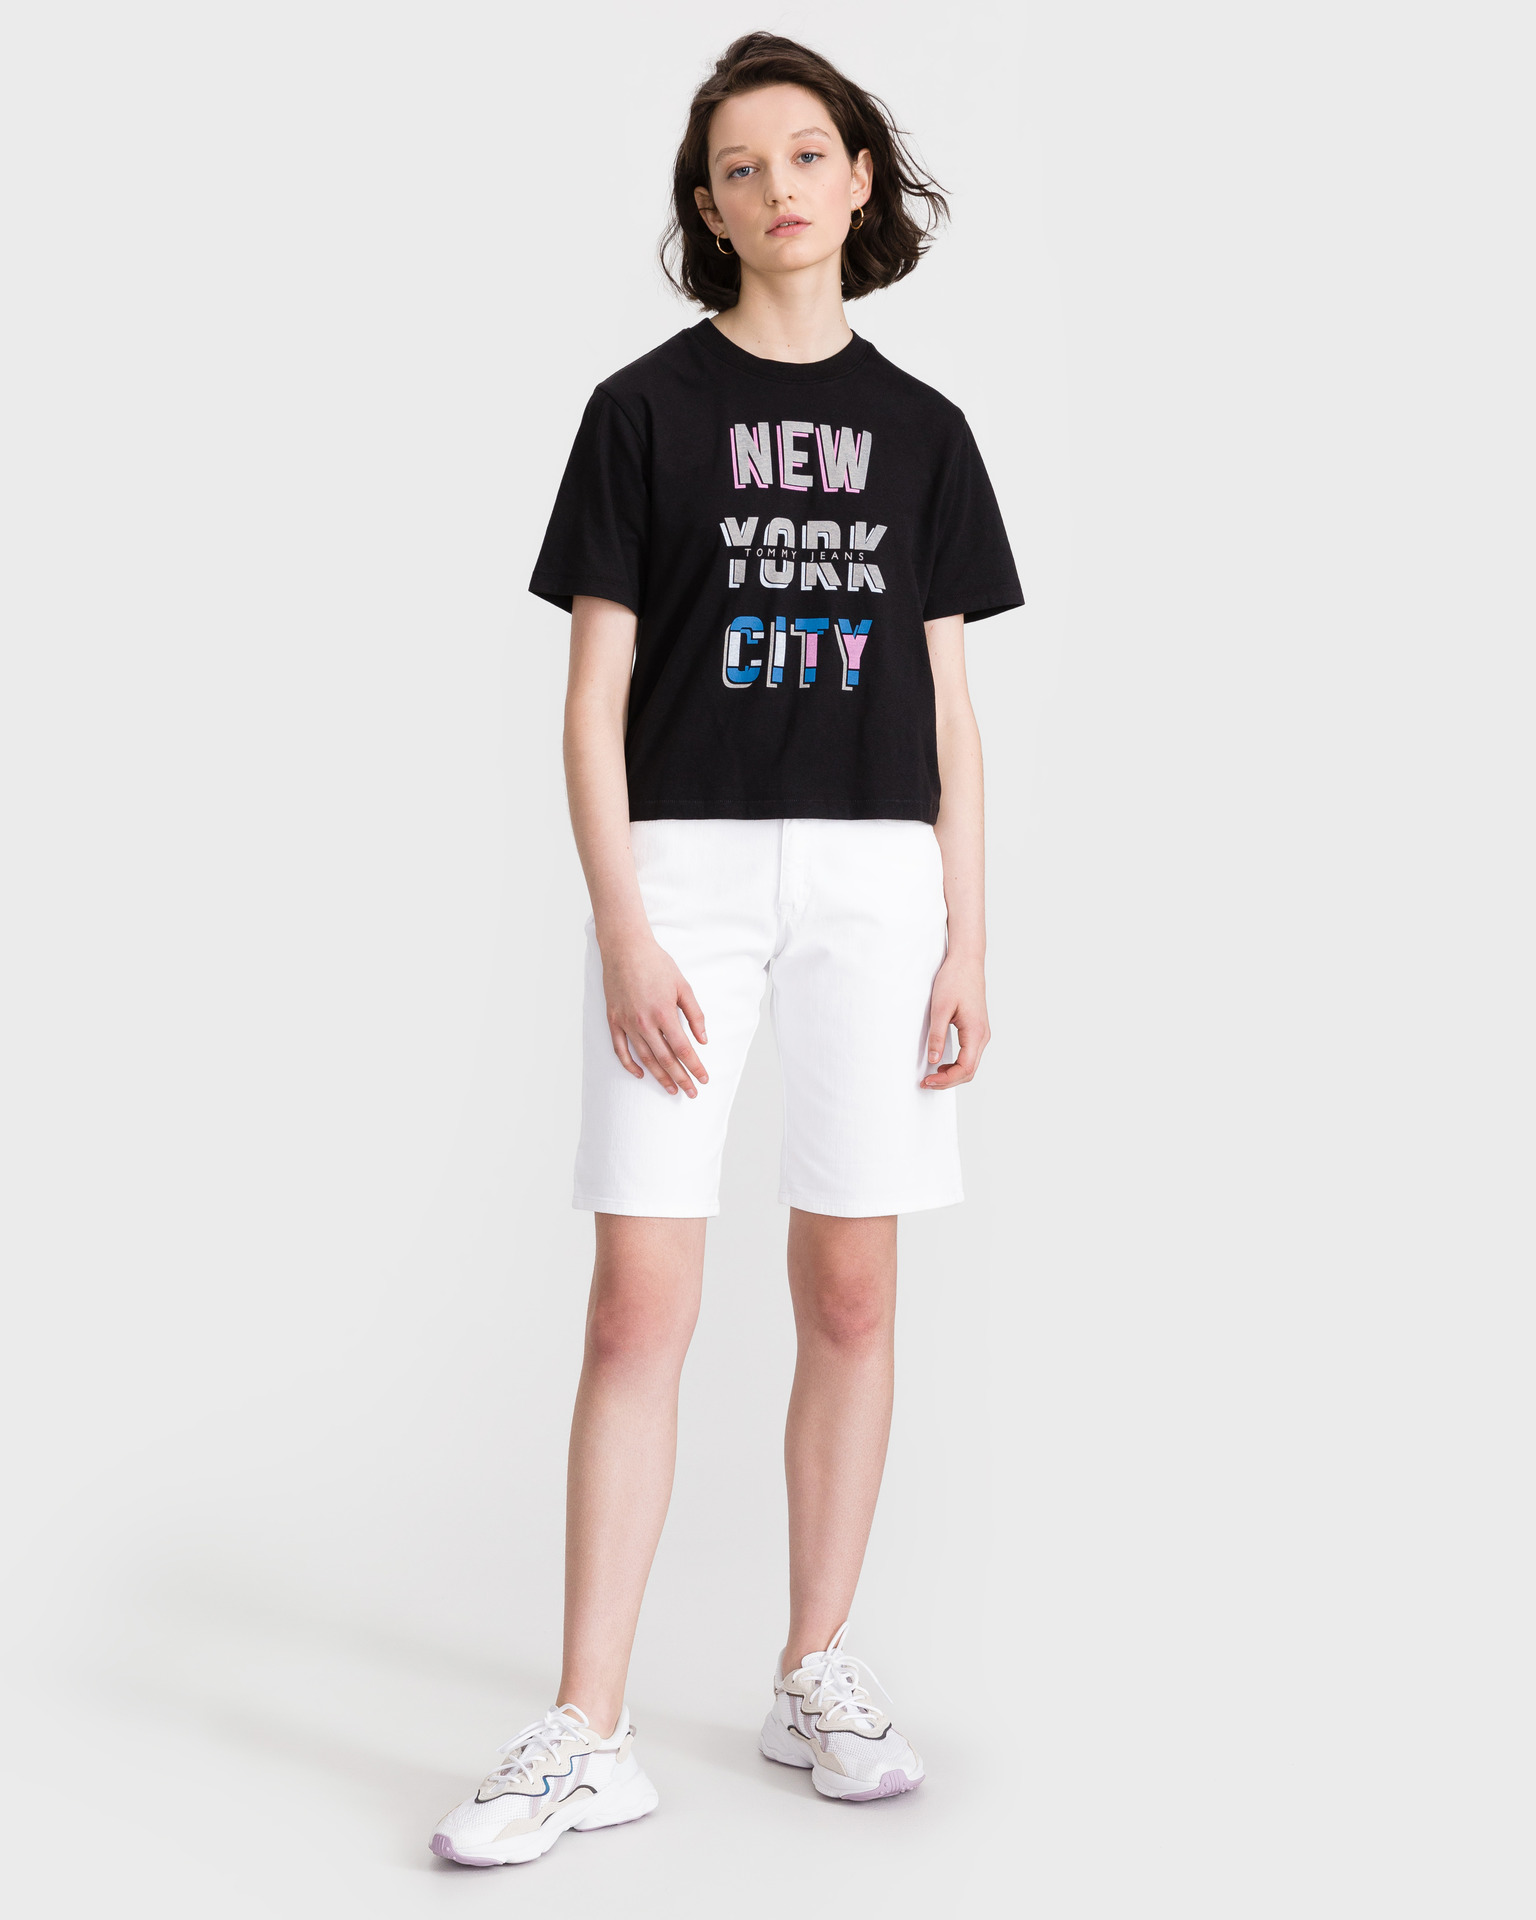 Tommy Jeans New York City Crop top Crna